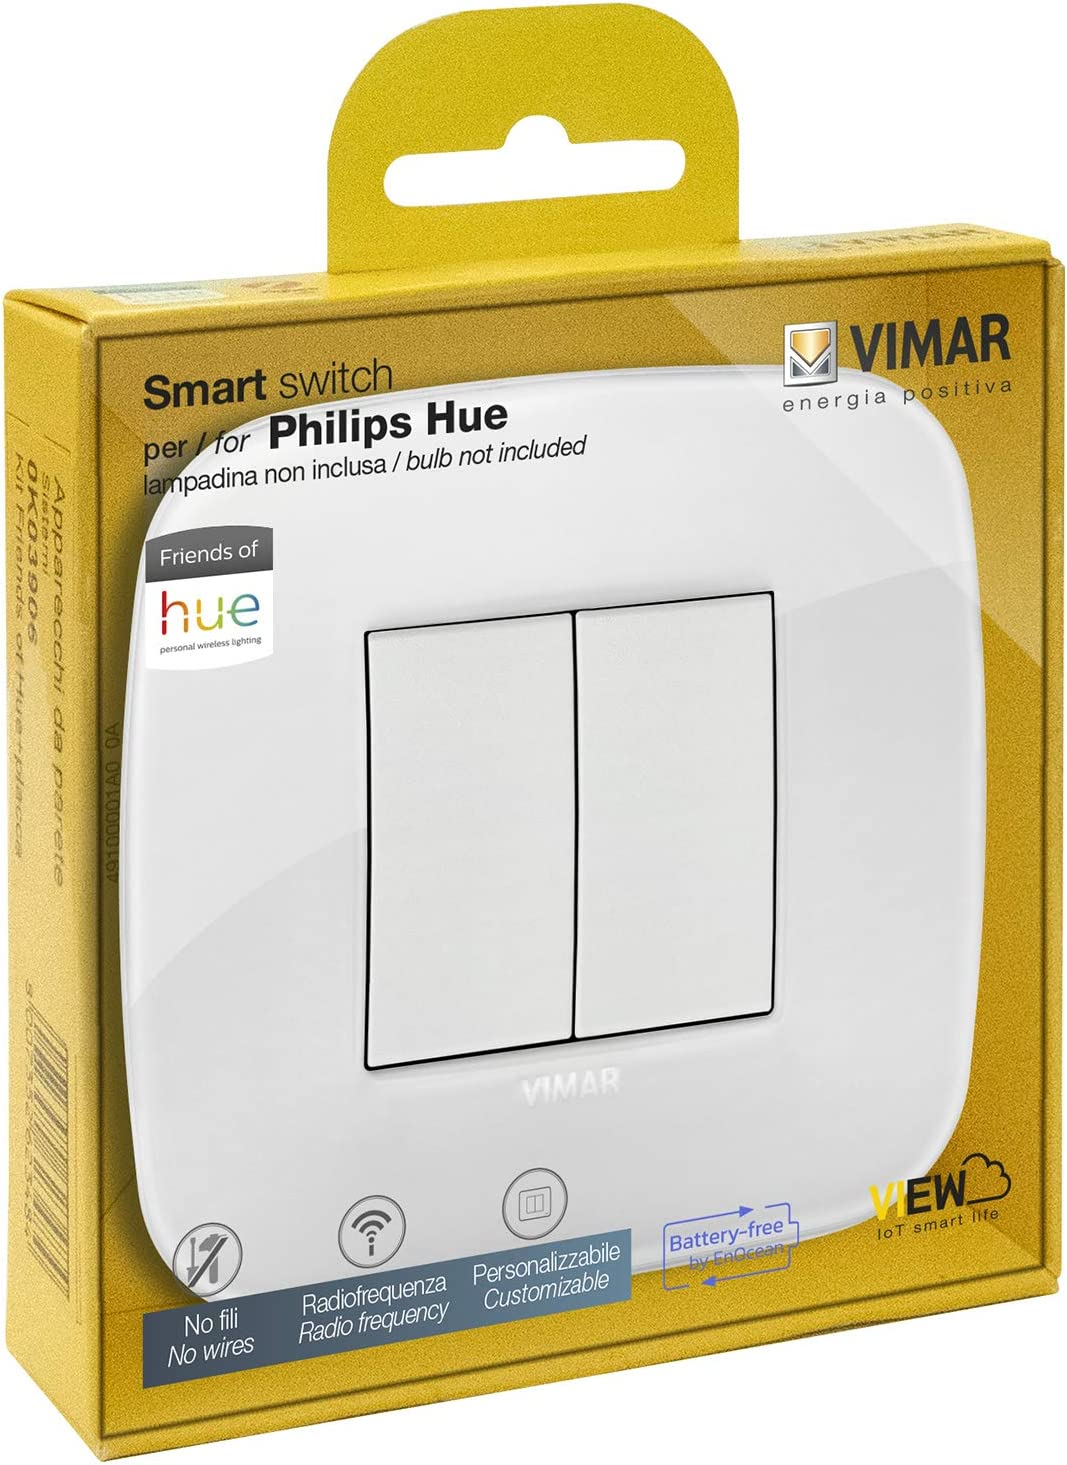 VIMAR 0K03906.06 Arké Roud Kit Interrupteur sans Fil en radiofréquence Philips Friends...